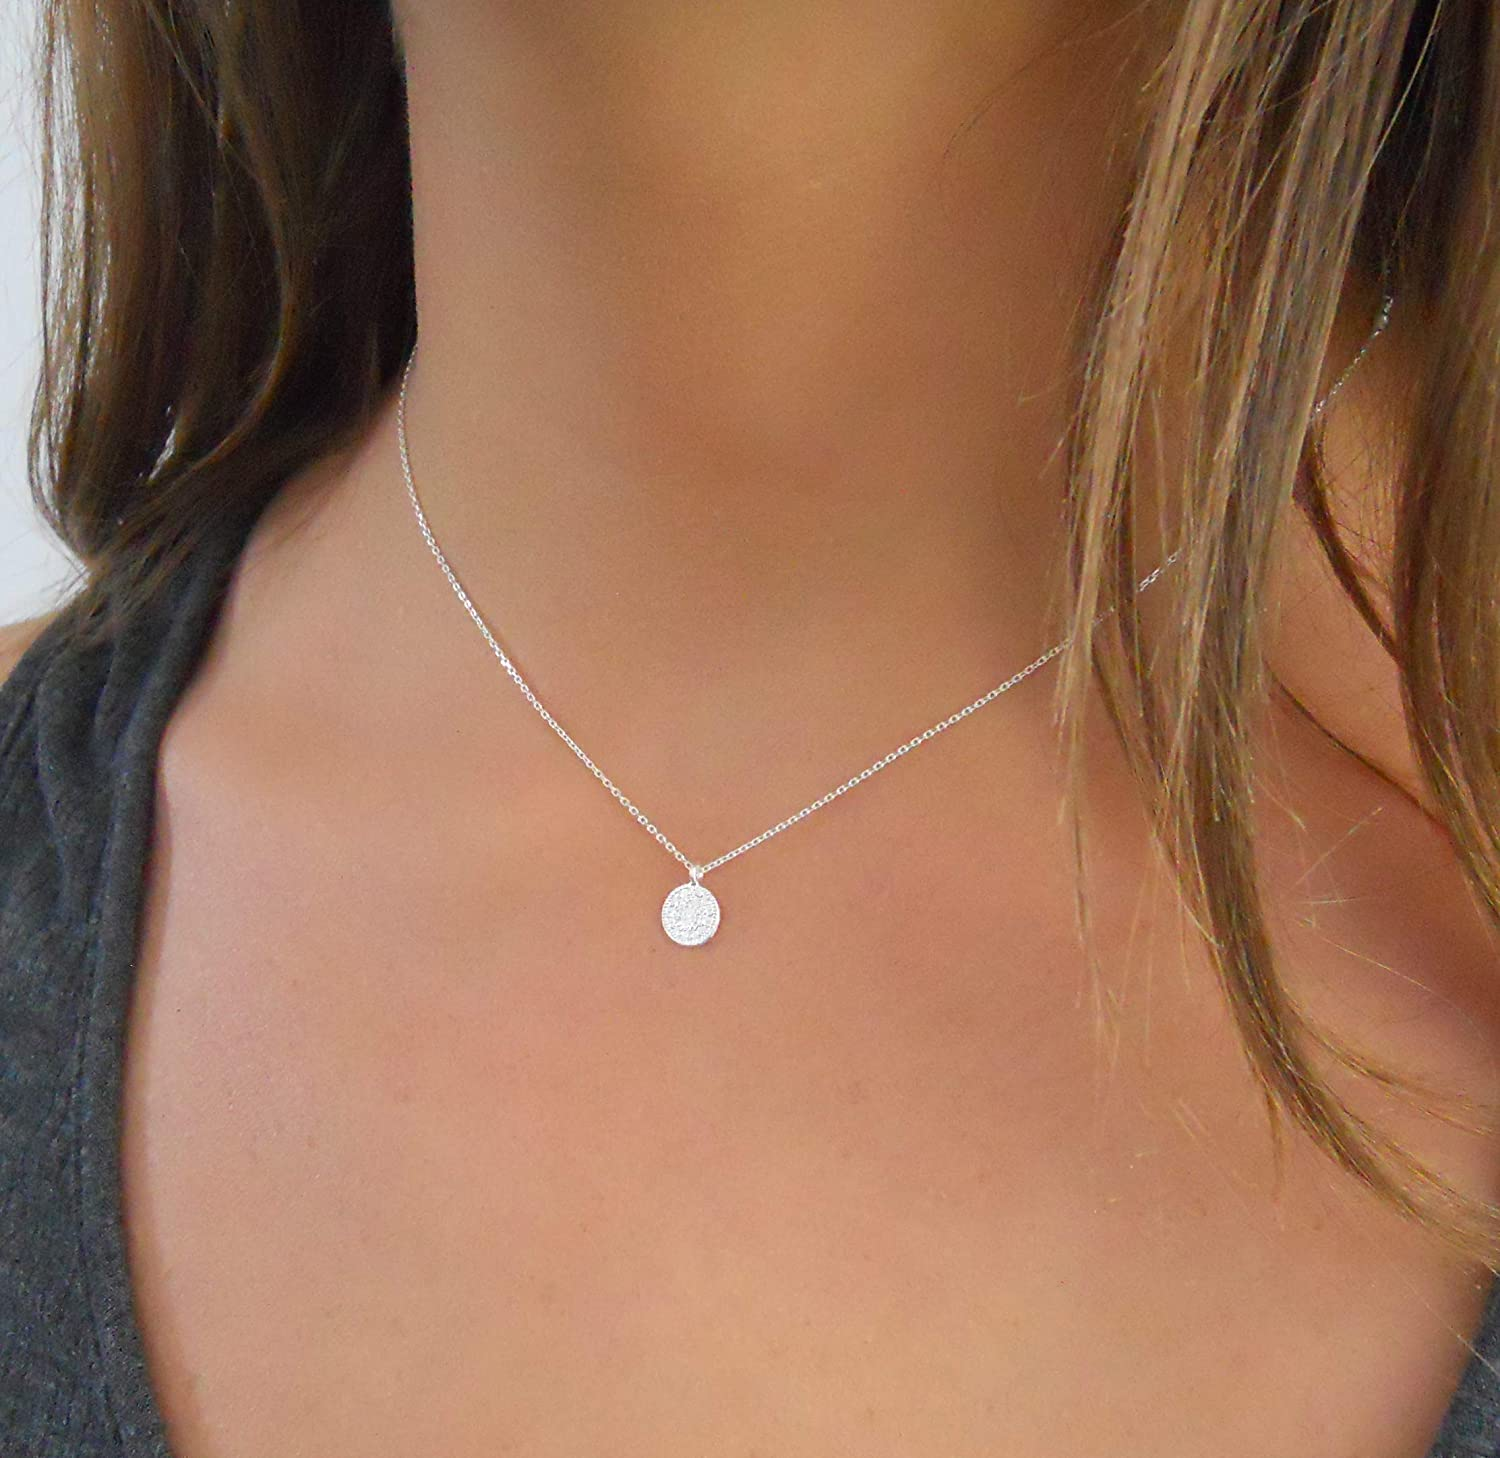 Annikabella Handmade Layered Simple Sterling Silver Coin Dot Choker Necklace with a Tiny Round Medallion Pendant For Women